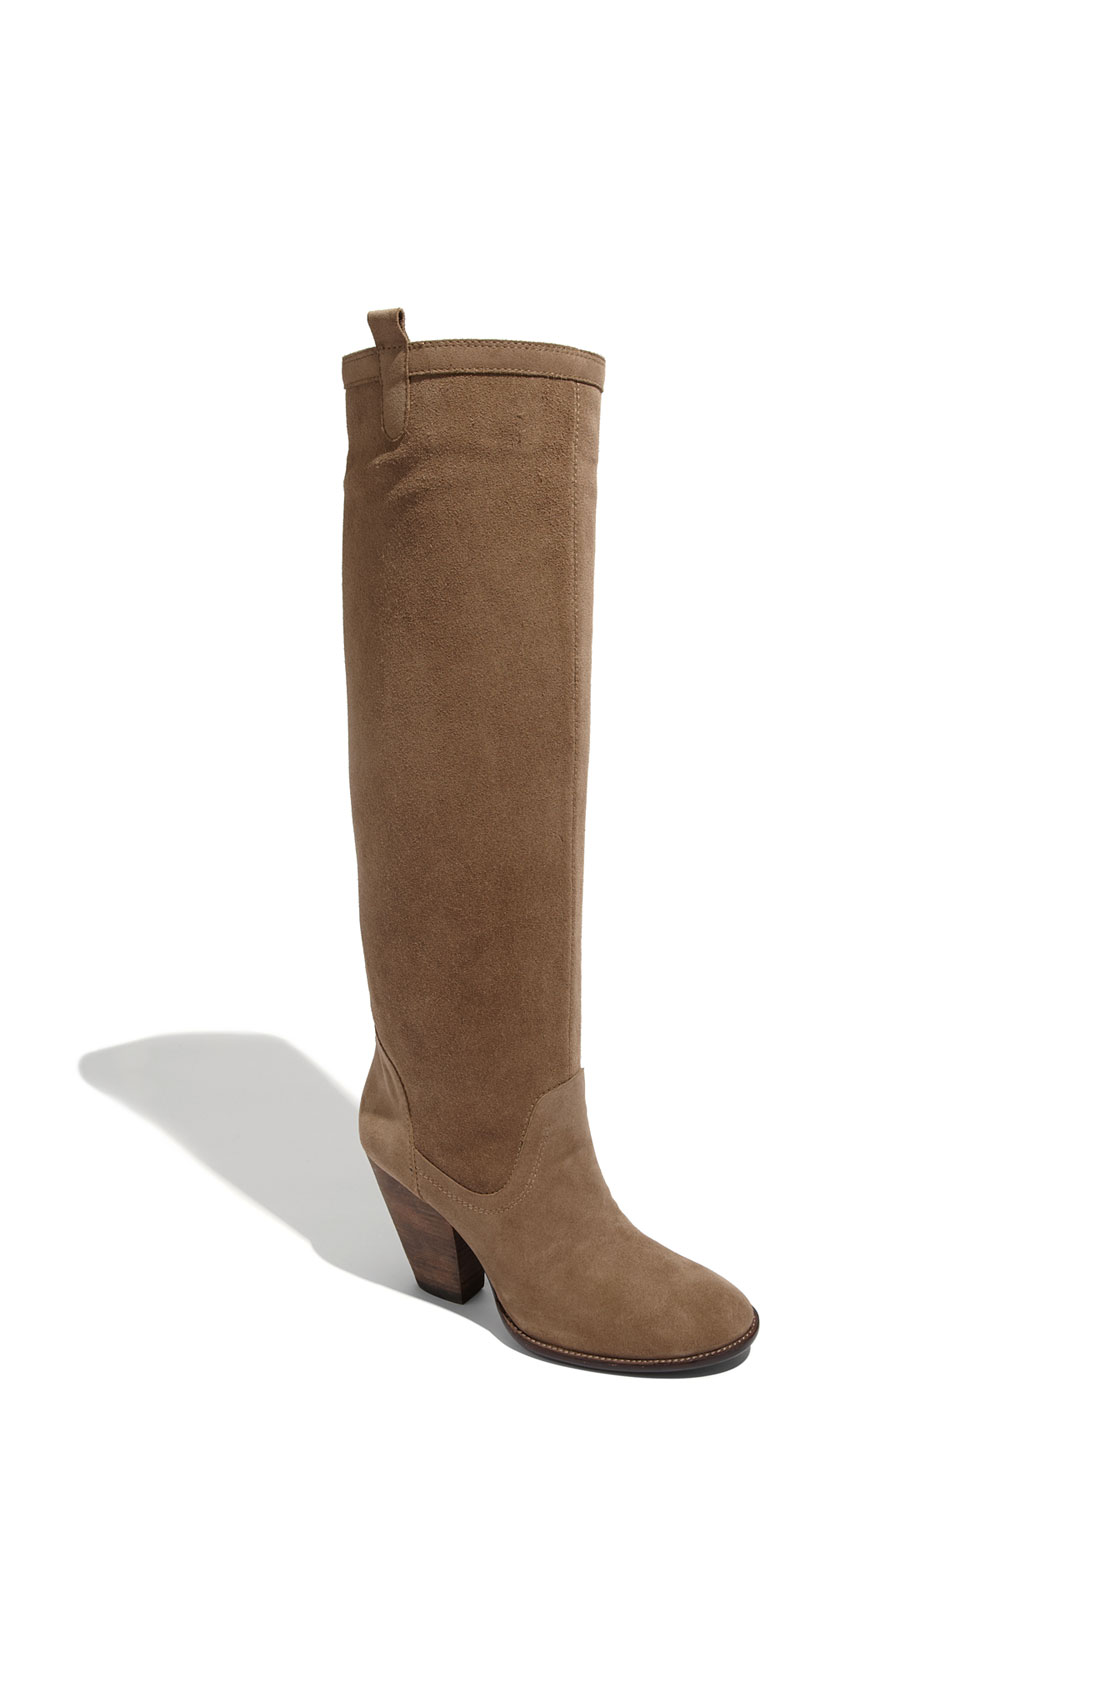 vince camuto braden suede boot in brown taupe lyst